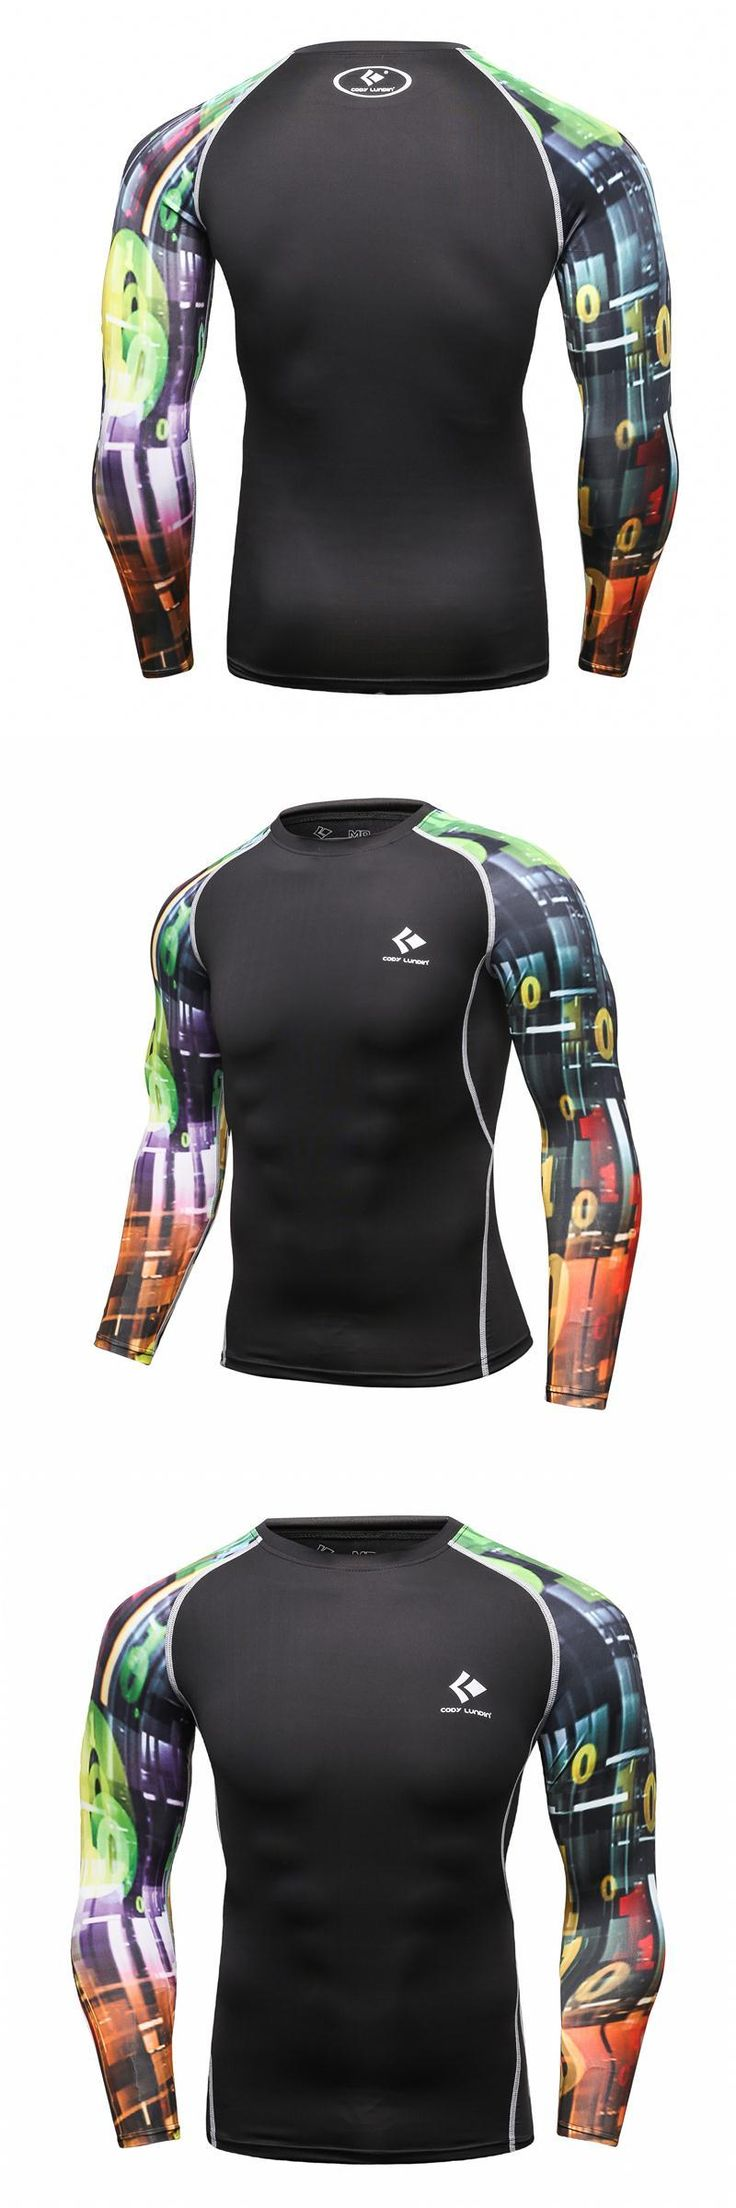 2017 Fashion T Shirt for Male Bodybuilding Base Layers Tights MMA Clothing Quick Dry Compression Shirt 3D Prints Crossfit